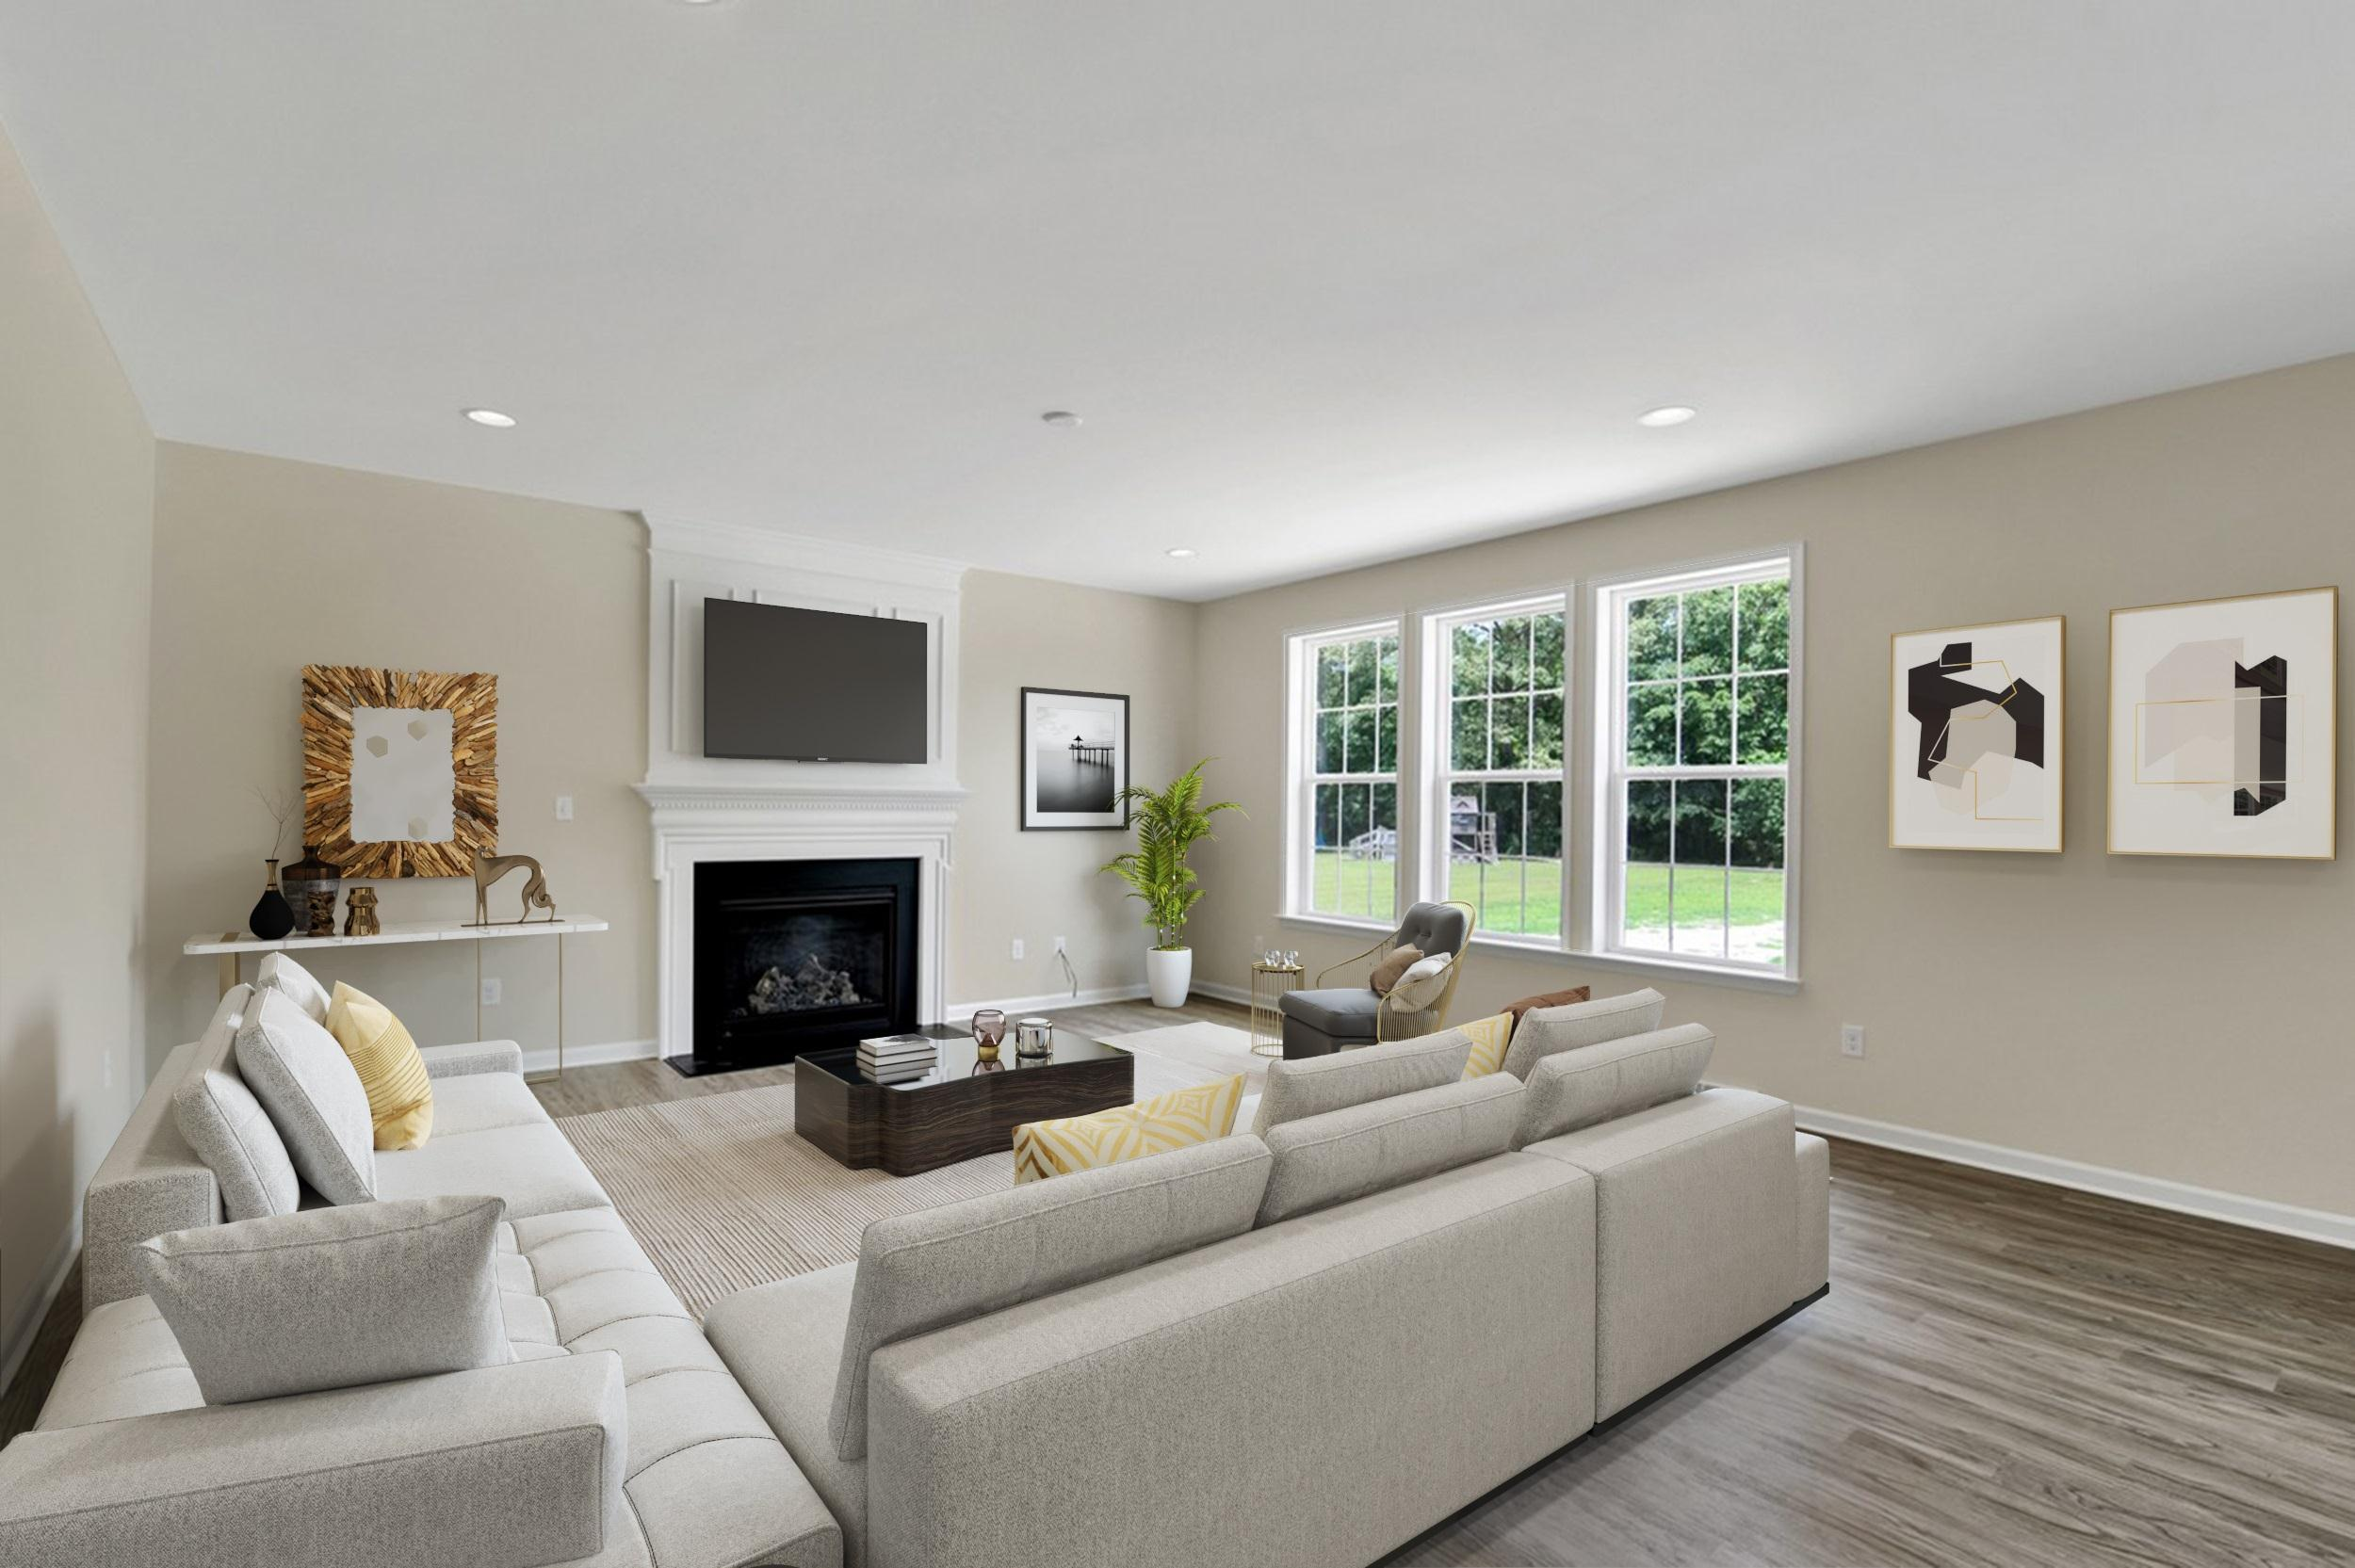 Living Area featured in The Millsboro By Ashburn Homes in Sussex, DE